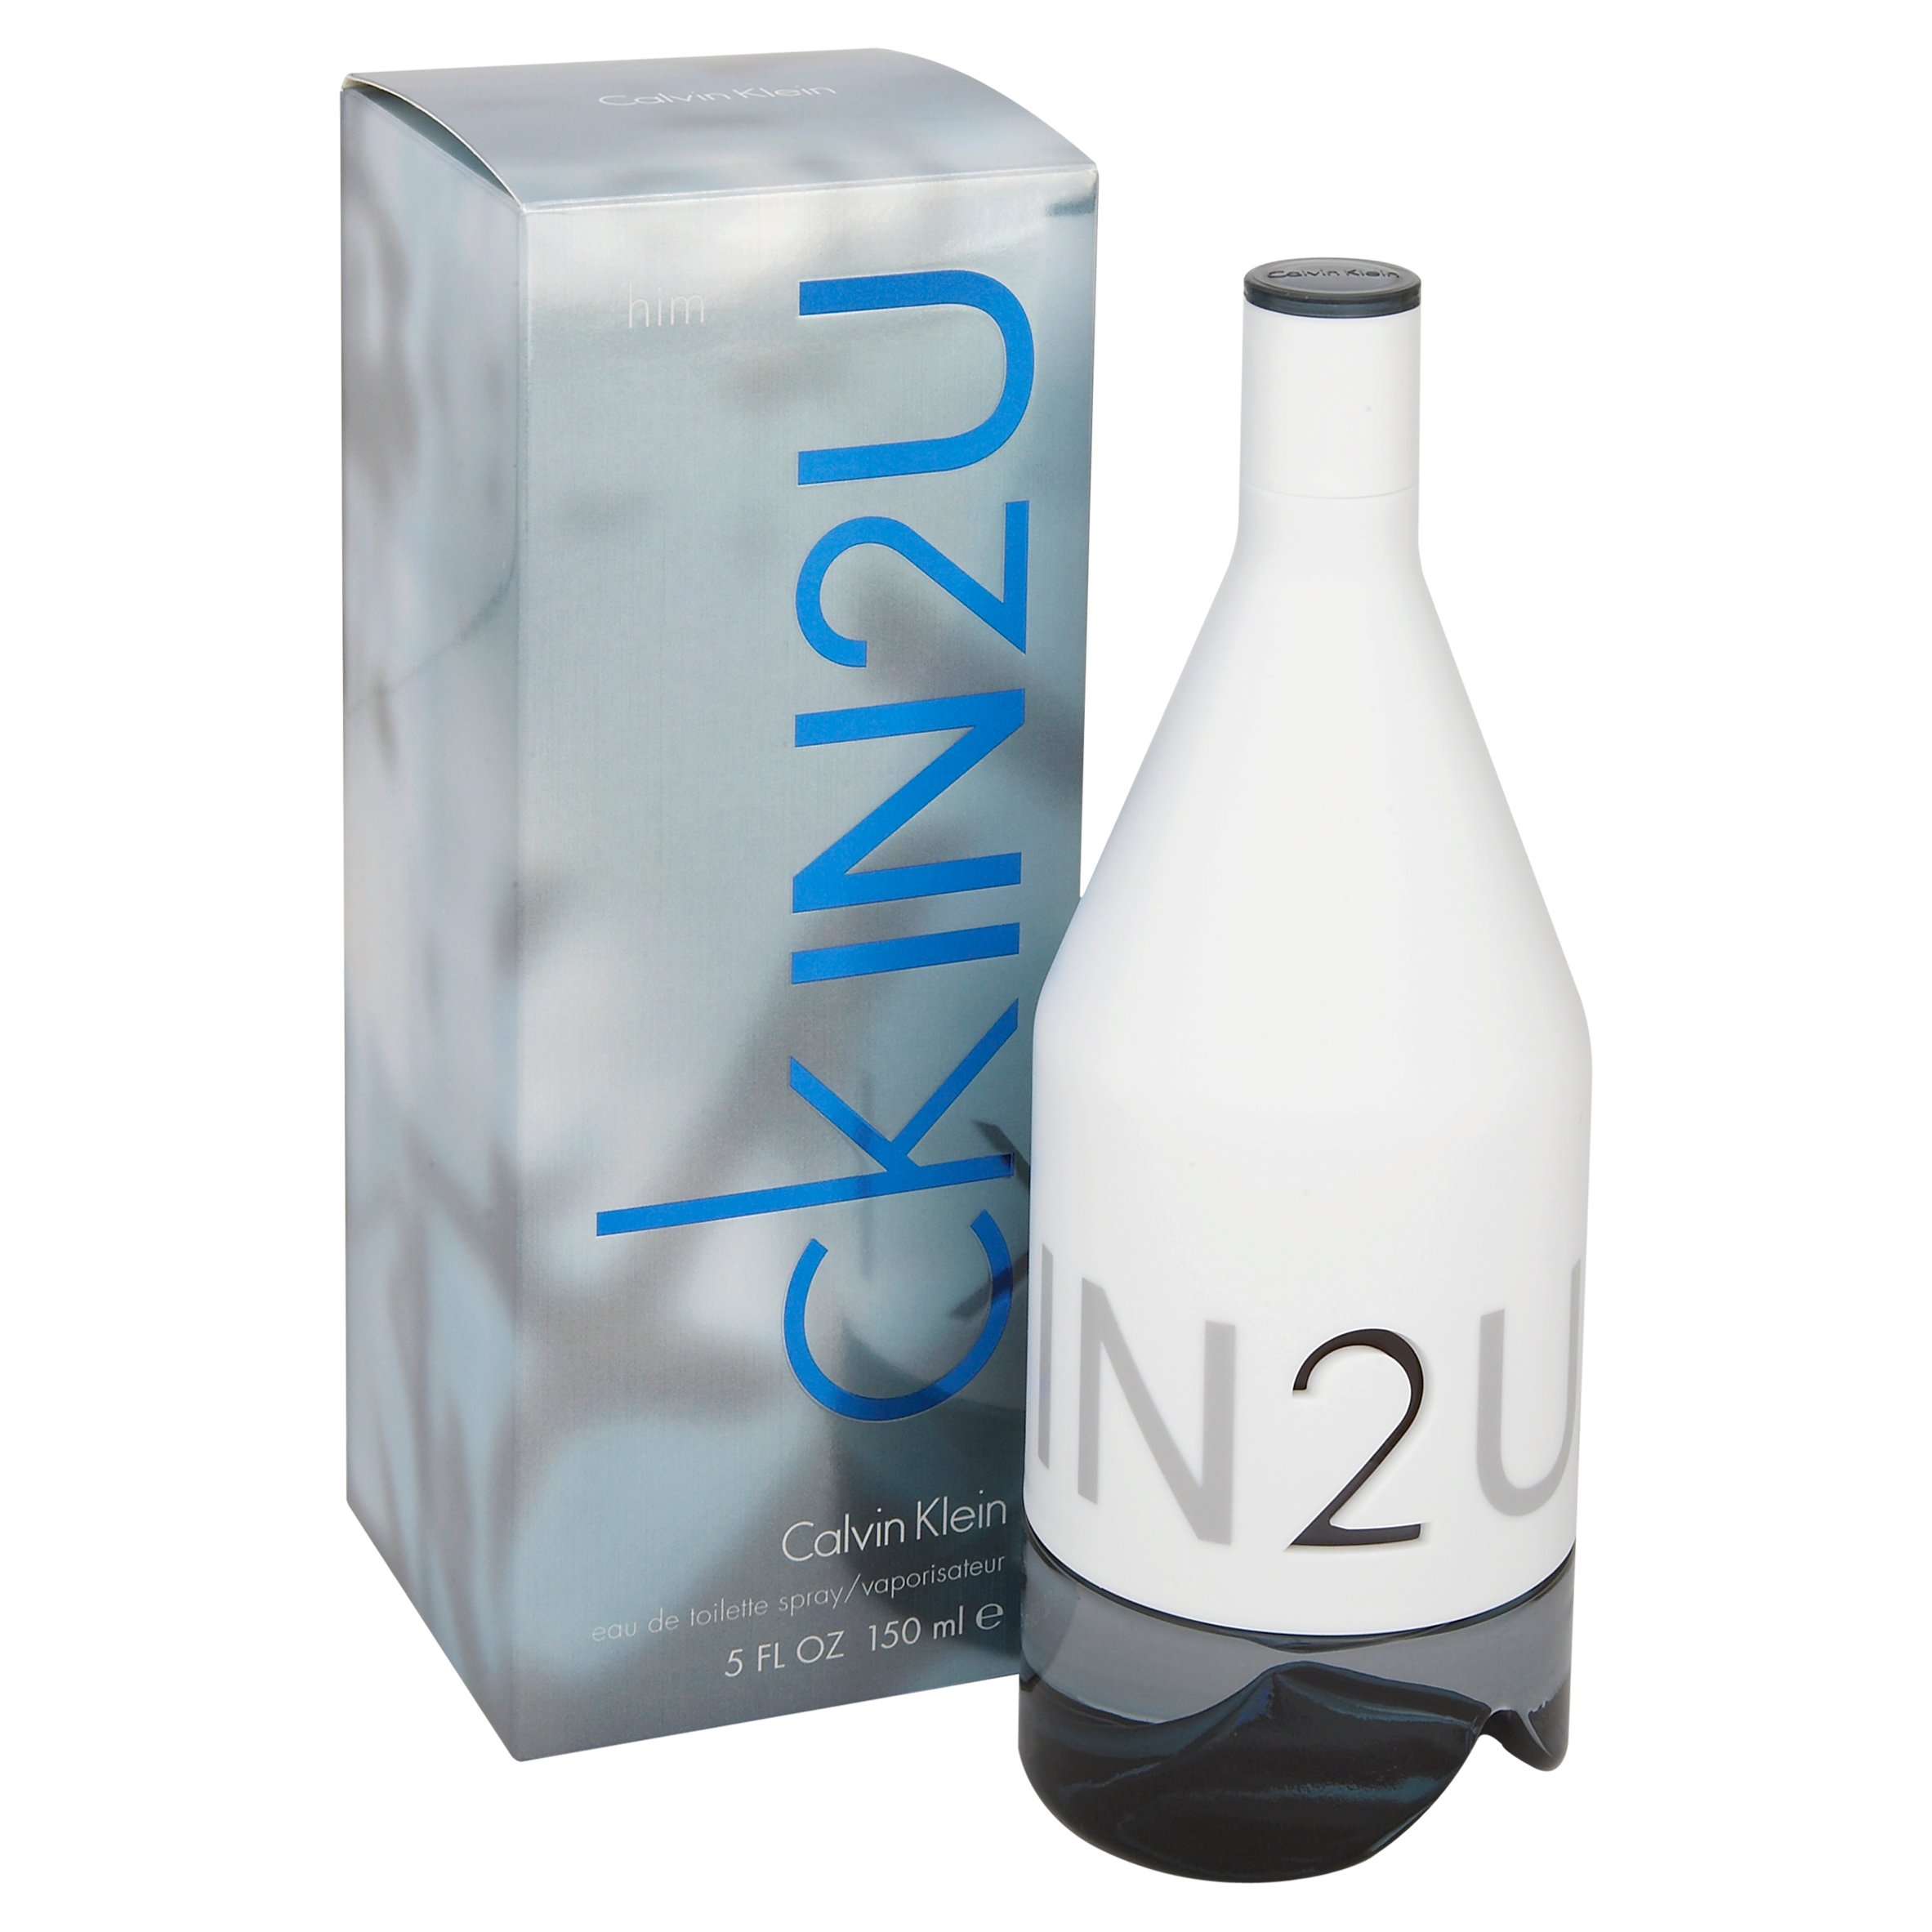 Calvin Klein In2U For Hi'm Eau De Toilette 150ml Gift Set By Moonpig - Delivery Available